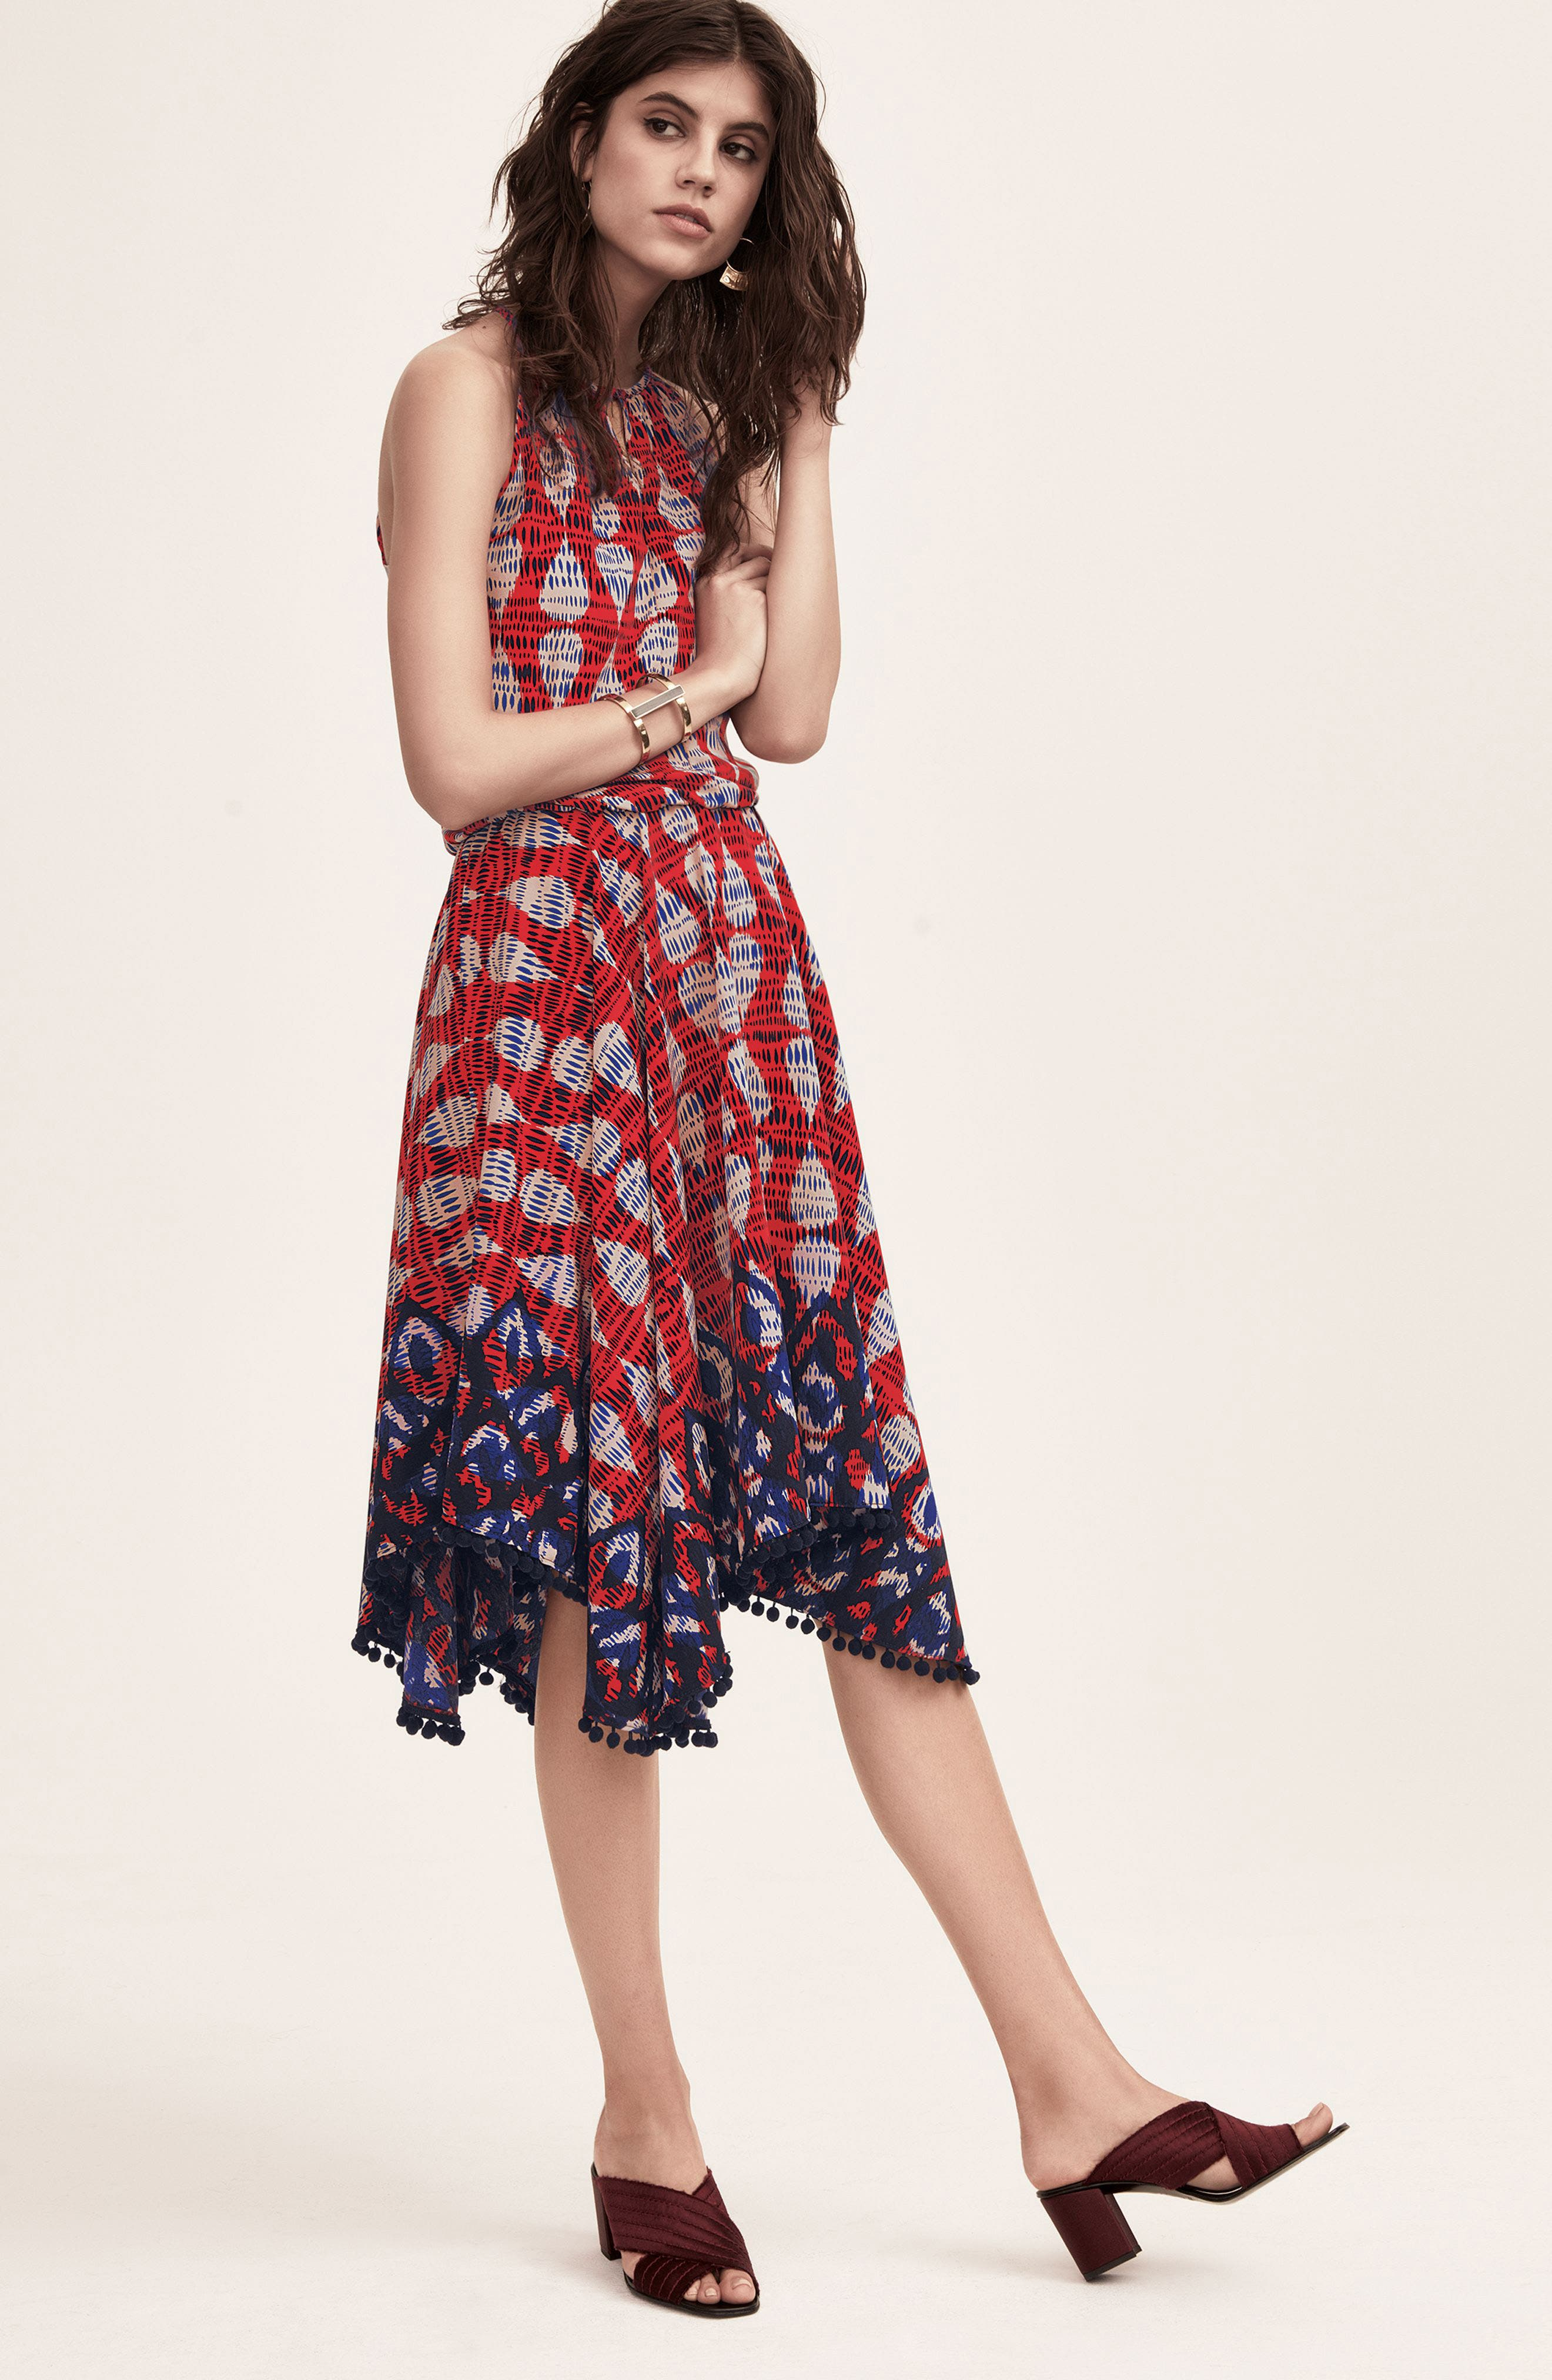 Maggy London Dress with Accessories